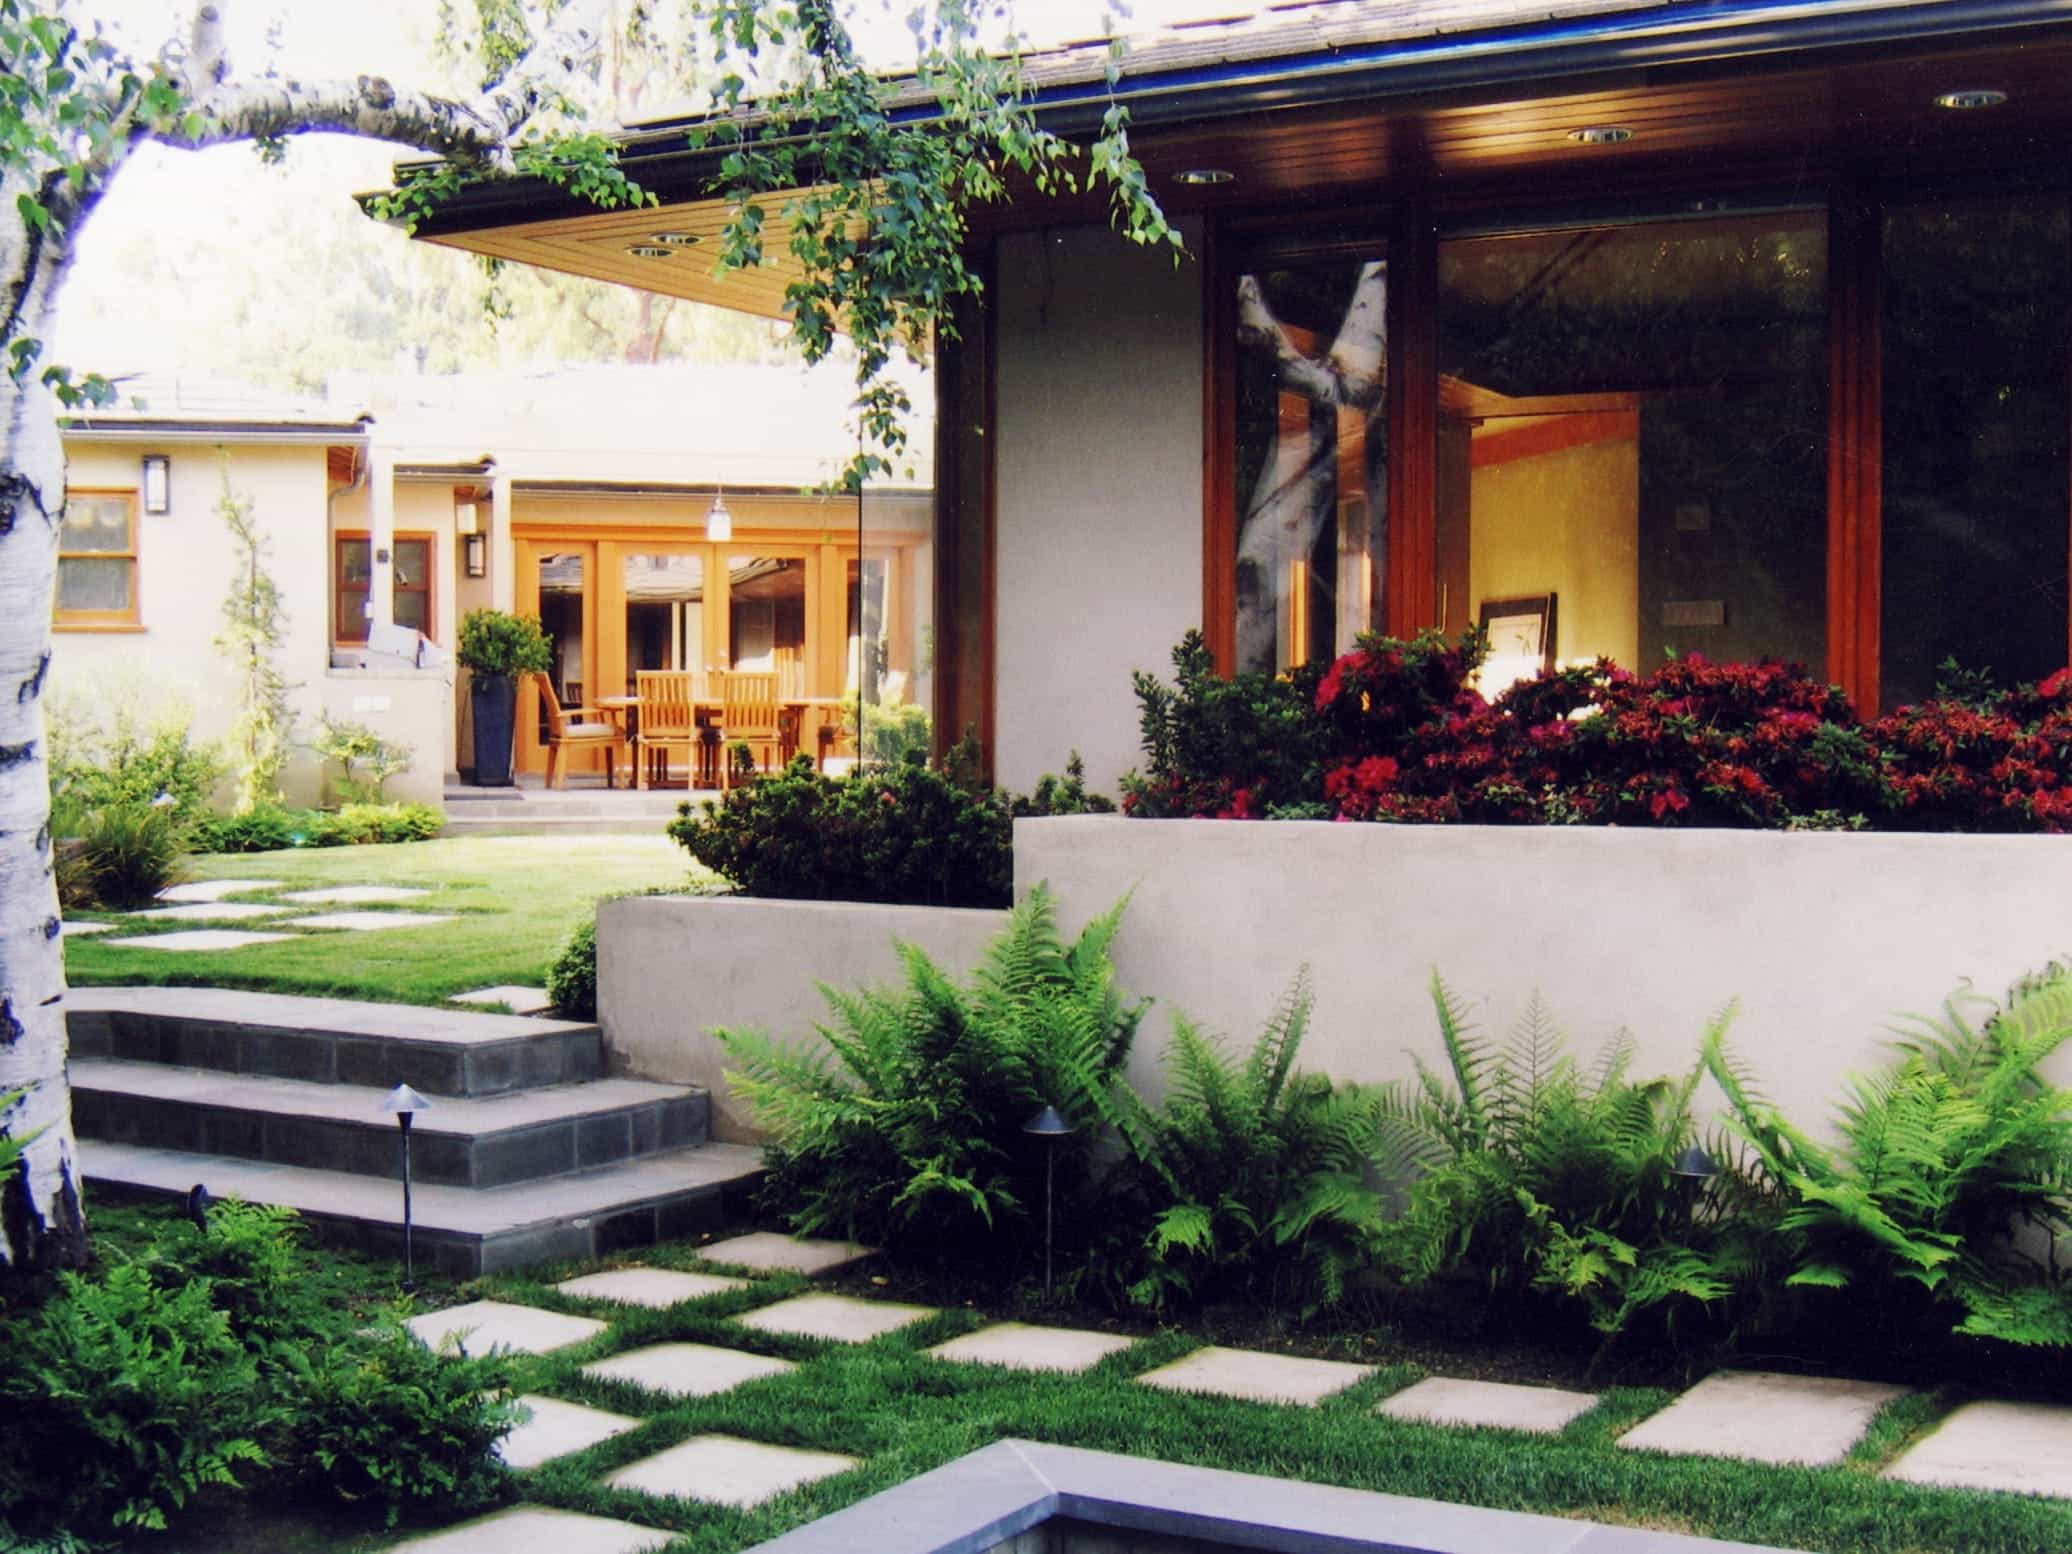 Modern Asian Garden Two Tiered Yard With Fern Lined Stone Walkway (View 7 of 32)